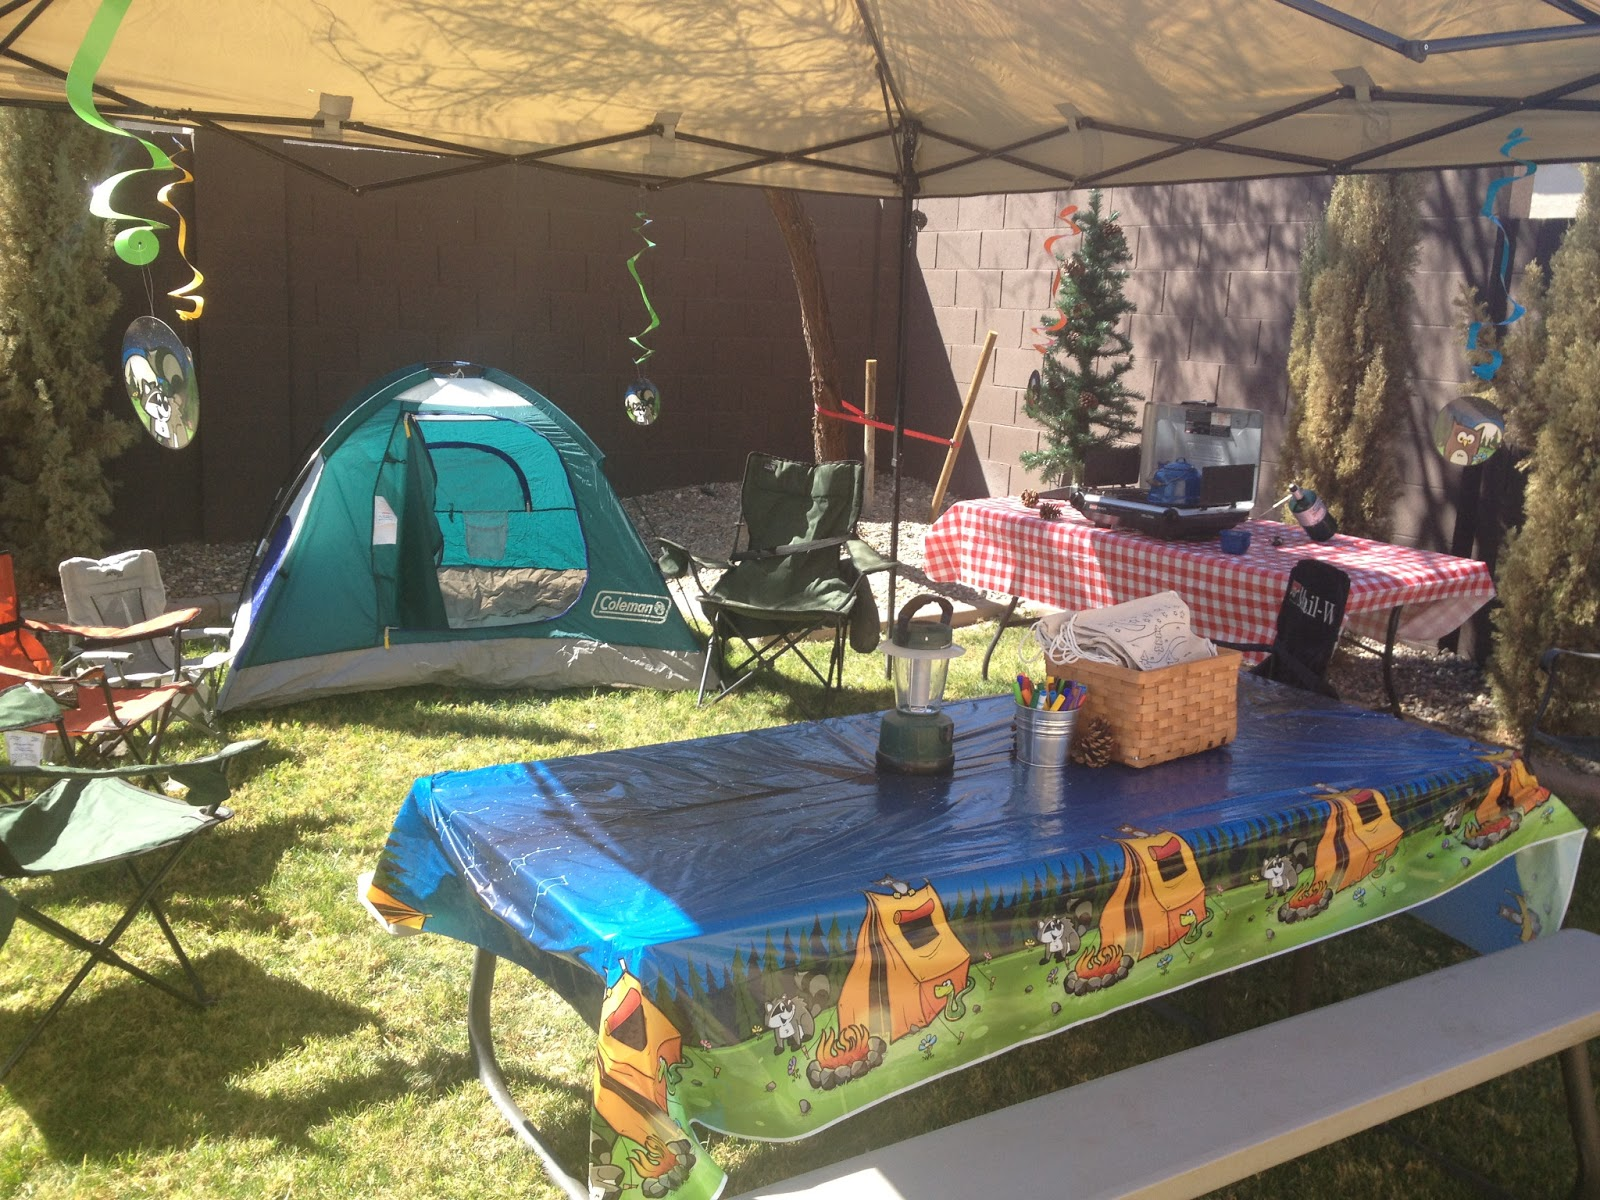 The Busy Broad Camping Themed Birthday Party Decorations